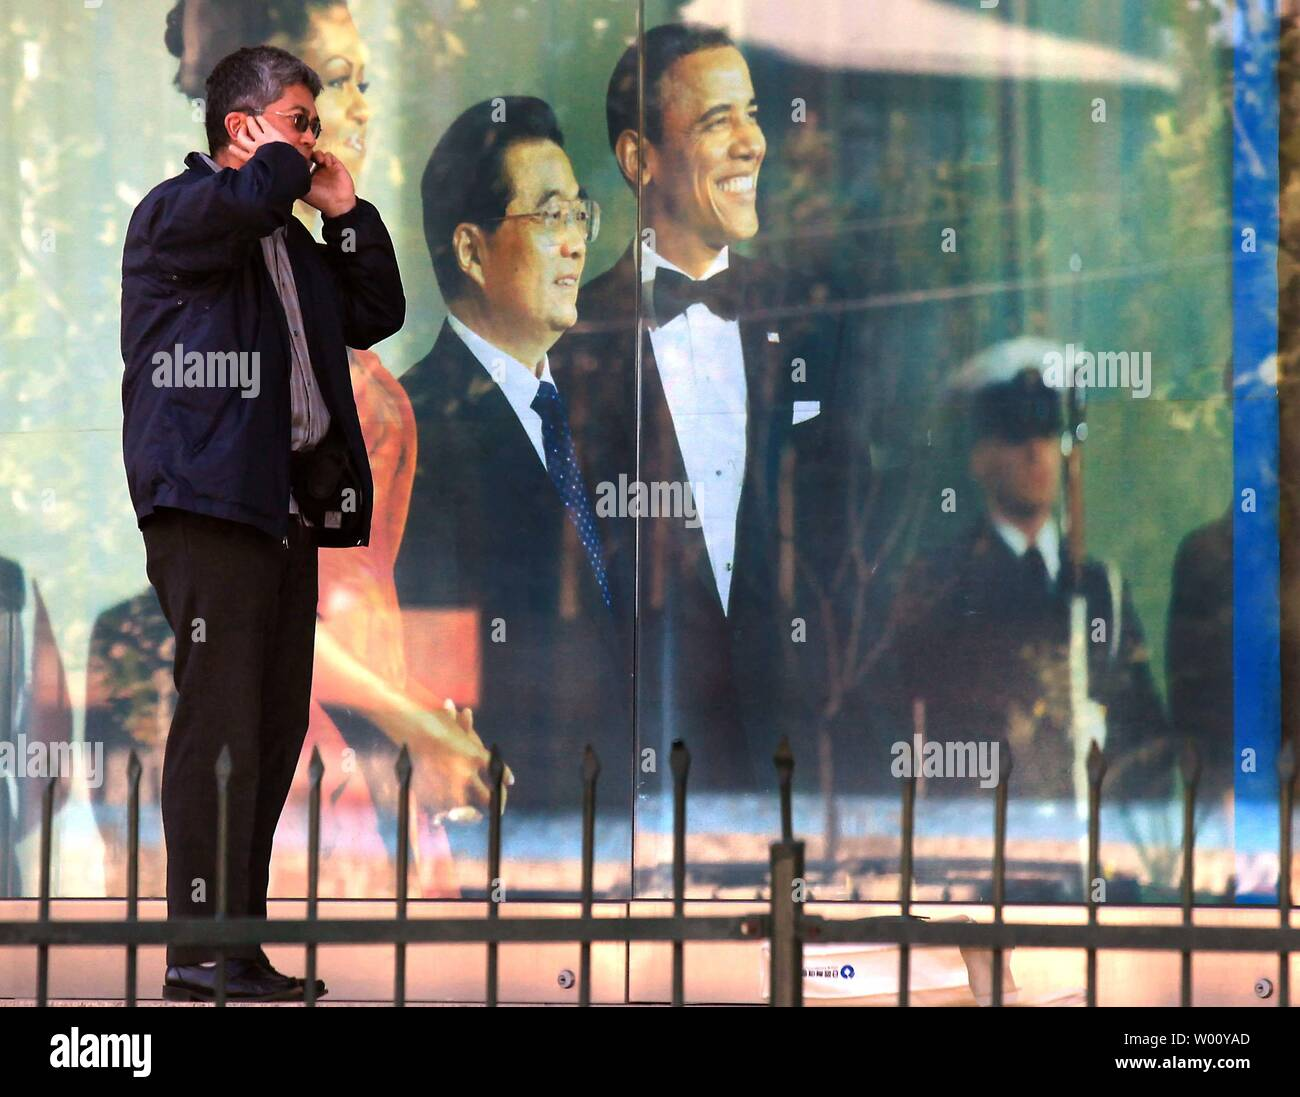 A Chinese man talks on a phone in front of the U.S. embassy's visa section, adorned with a photo of Chinese President Hu Jintao's state visit to Washington, in Beijing October 24, 2011.   The U.S. processed over 1 million visas this year in China, allowing a record number of Chinese to travel to the United States.    UPI/Stephen Shaver Stock Photo